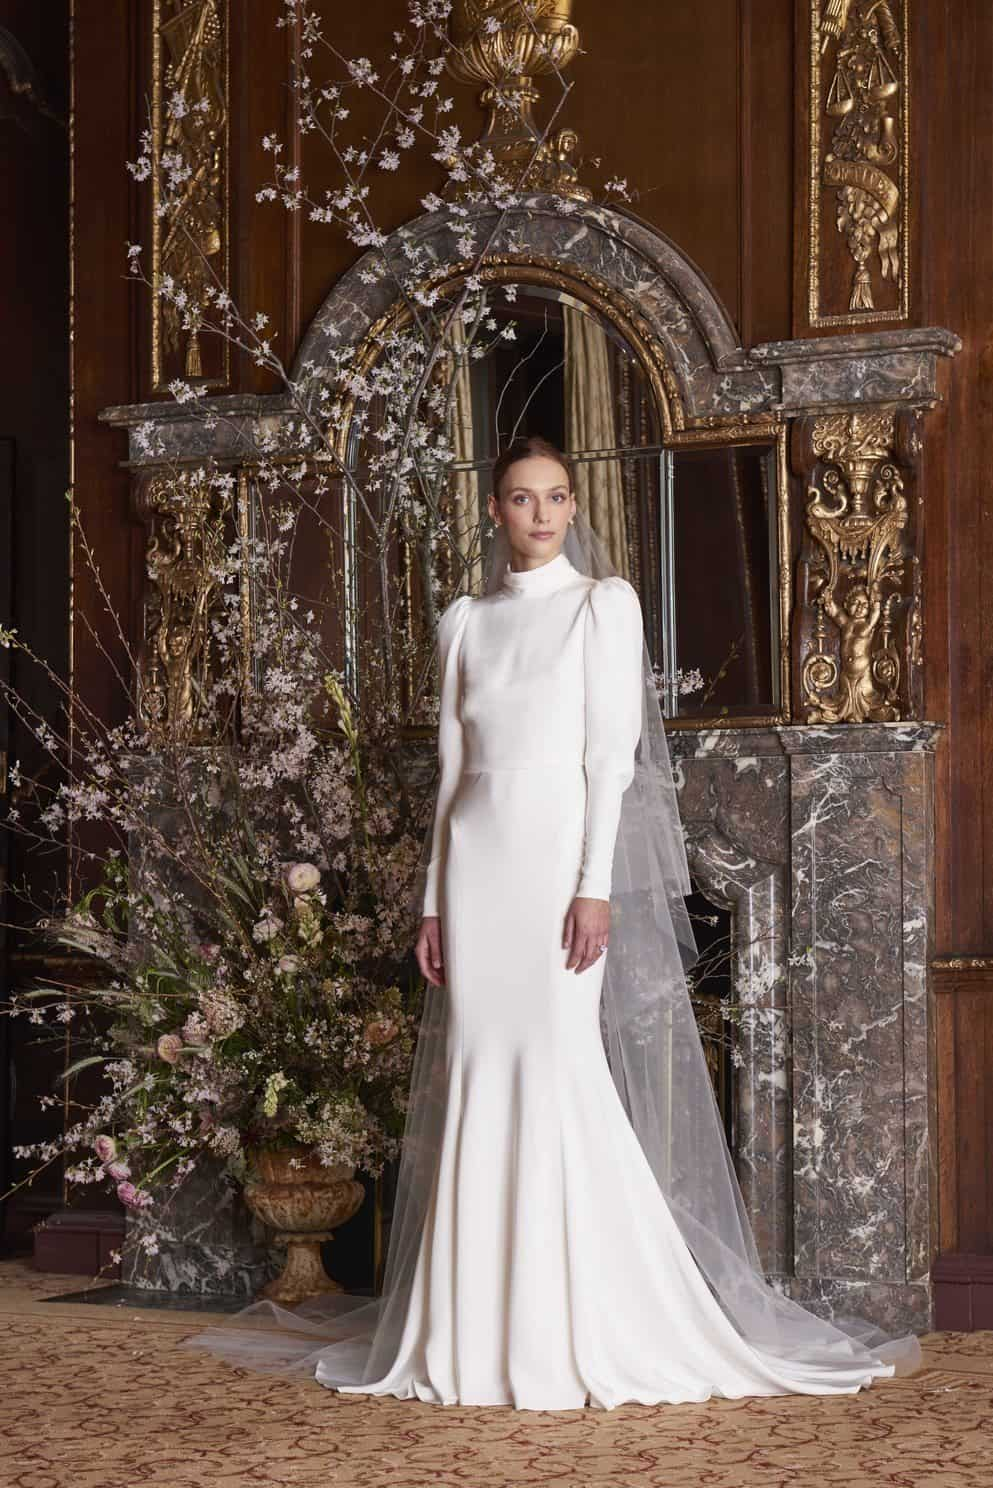 gola-altamonique-lhuillier-wedding-dresses-spring-2019-004